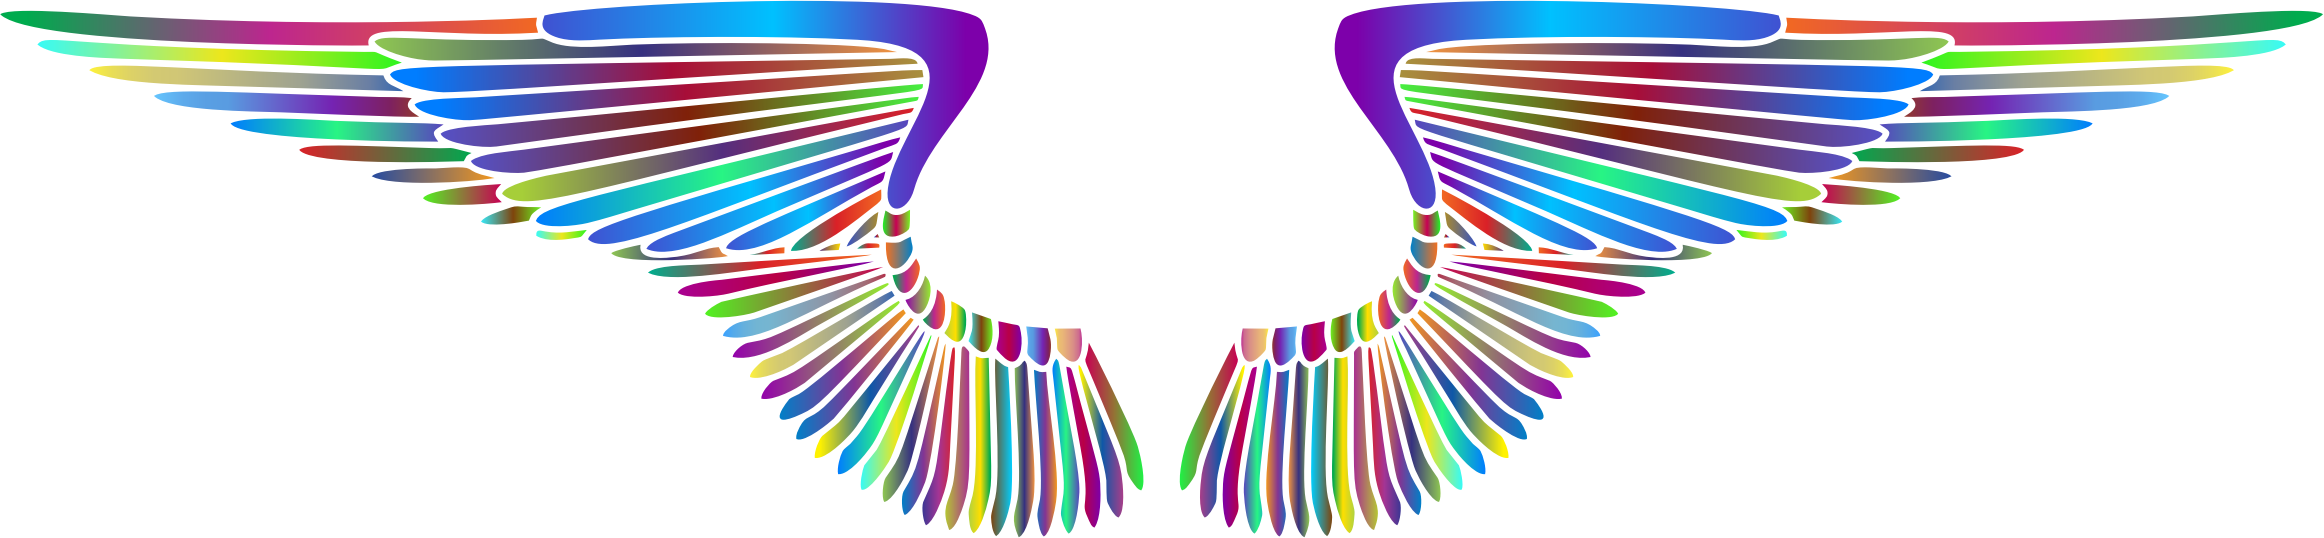 Hand Drawn Wings Prismatic 2 by GDJ